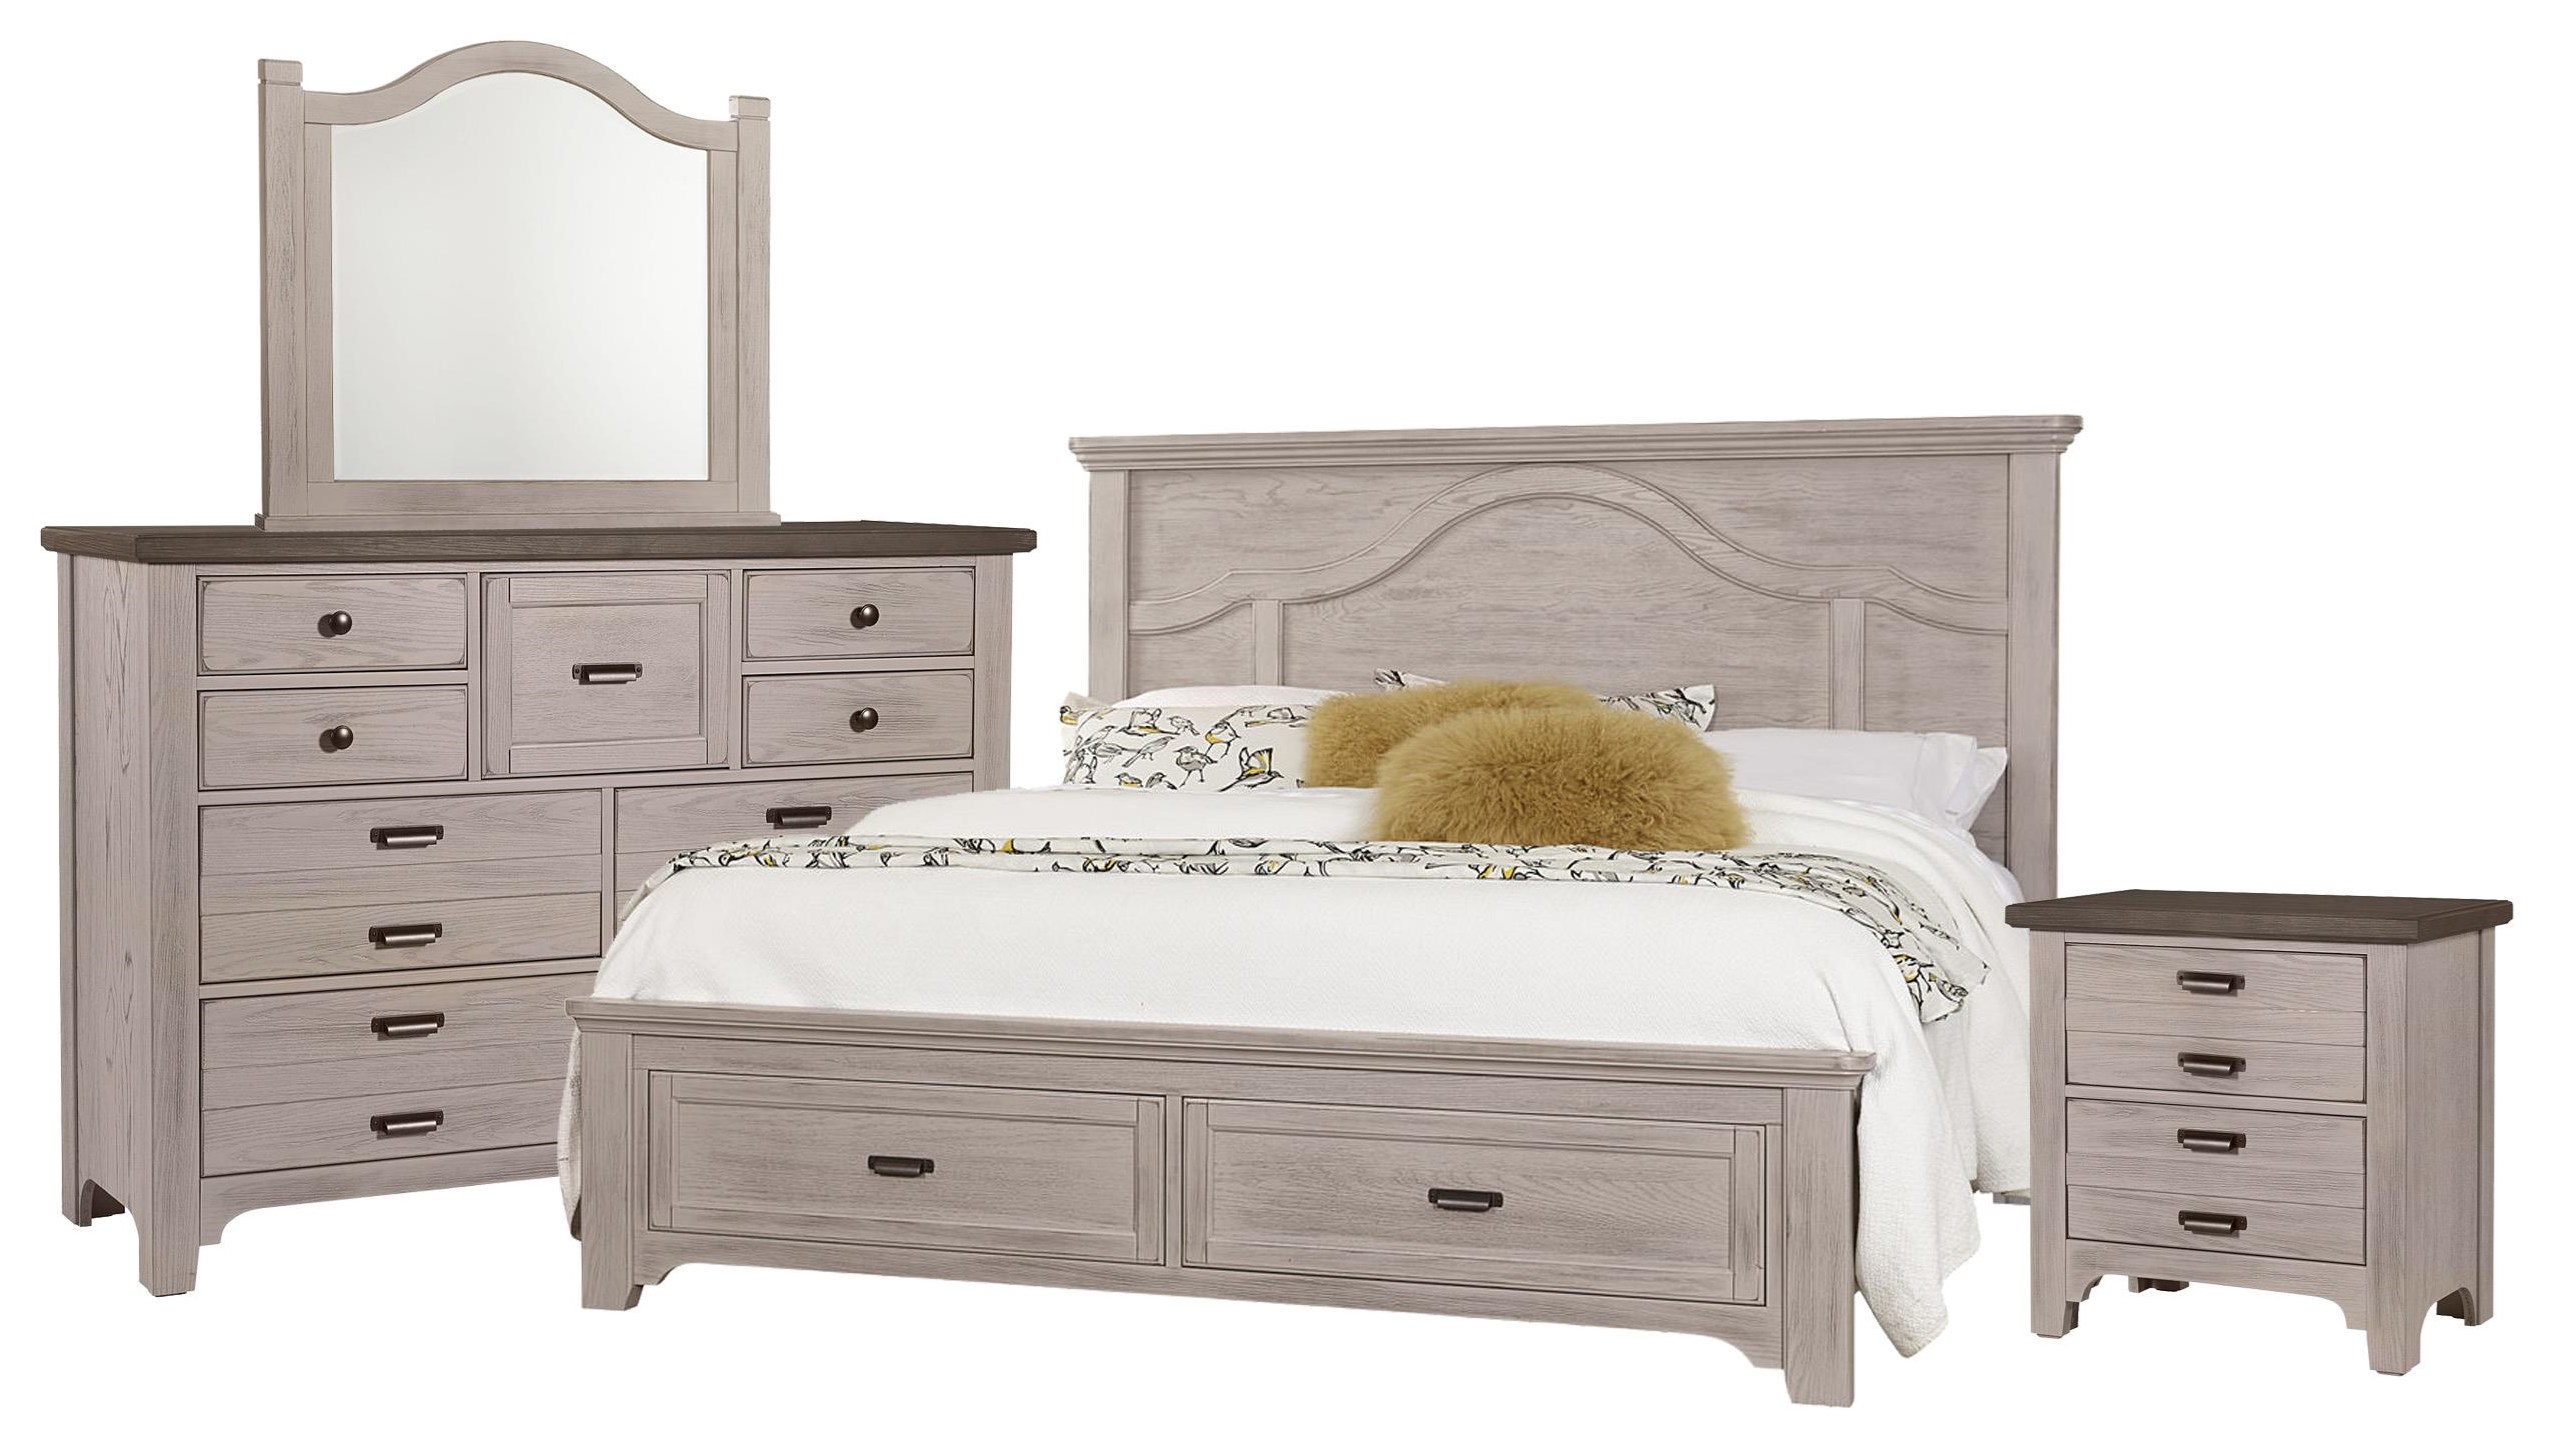 Bungalo Home Queen Bed, Dresser, Mirror, Nightstand by Vaughan Bassett at Johnny Janosik